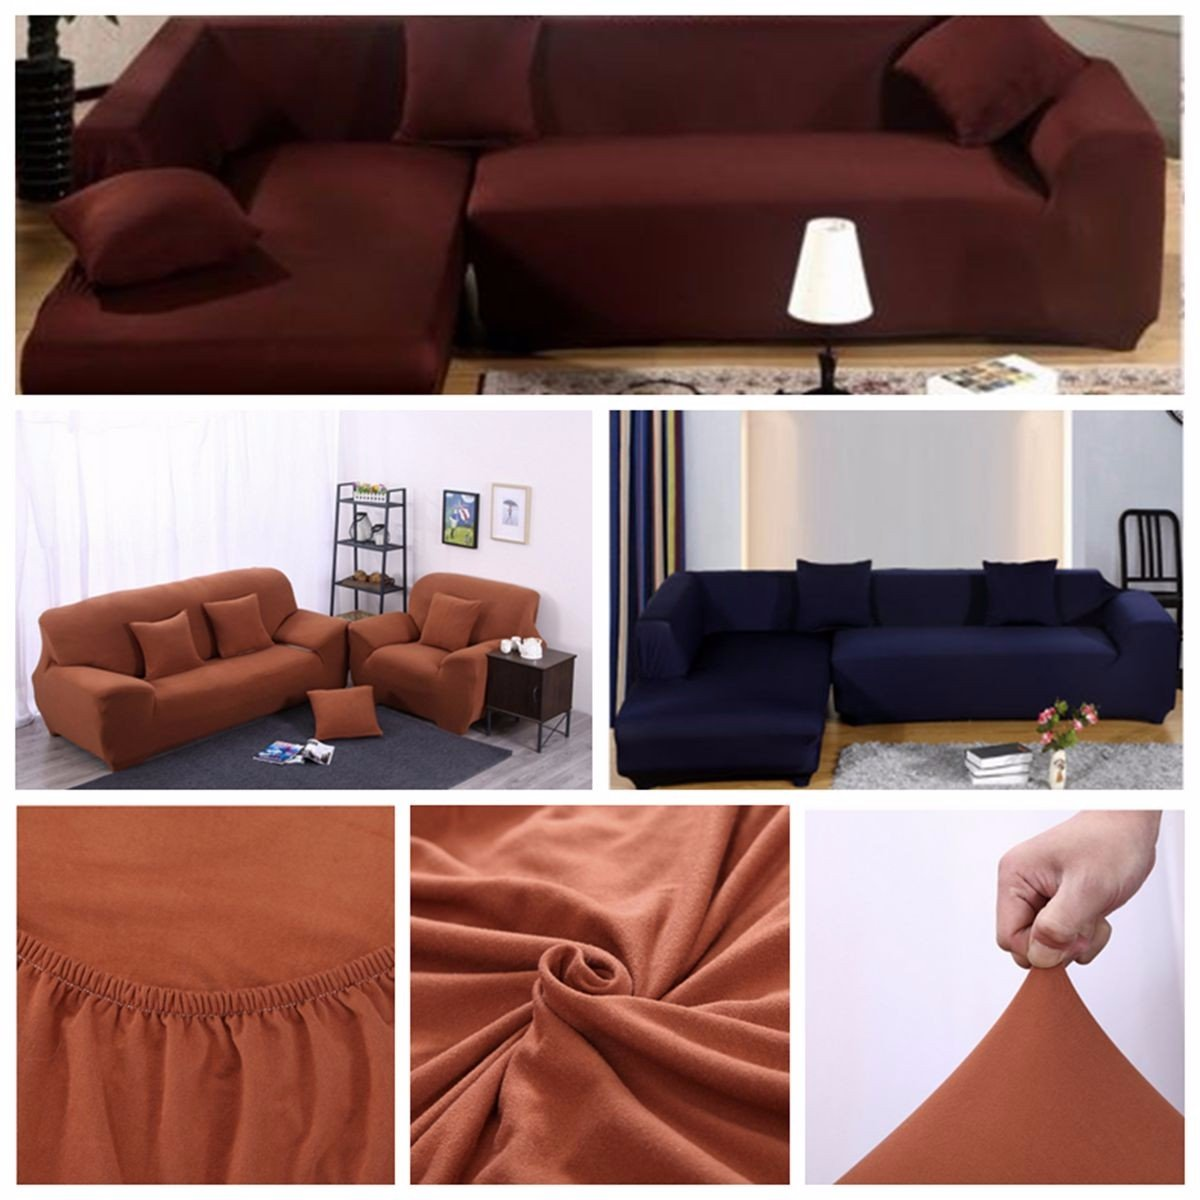 Terrific L Shape 2 3 Seats Stretch Elastic Fabric Sofa Cover Pet Dog Sectional Slipcover Furniture Protector Download Free Architecture Designs Rallybritishbridgeorg